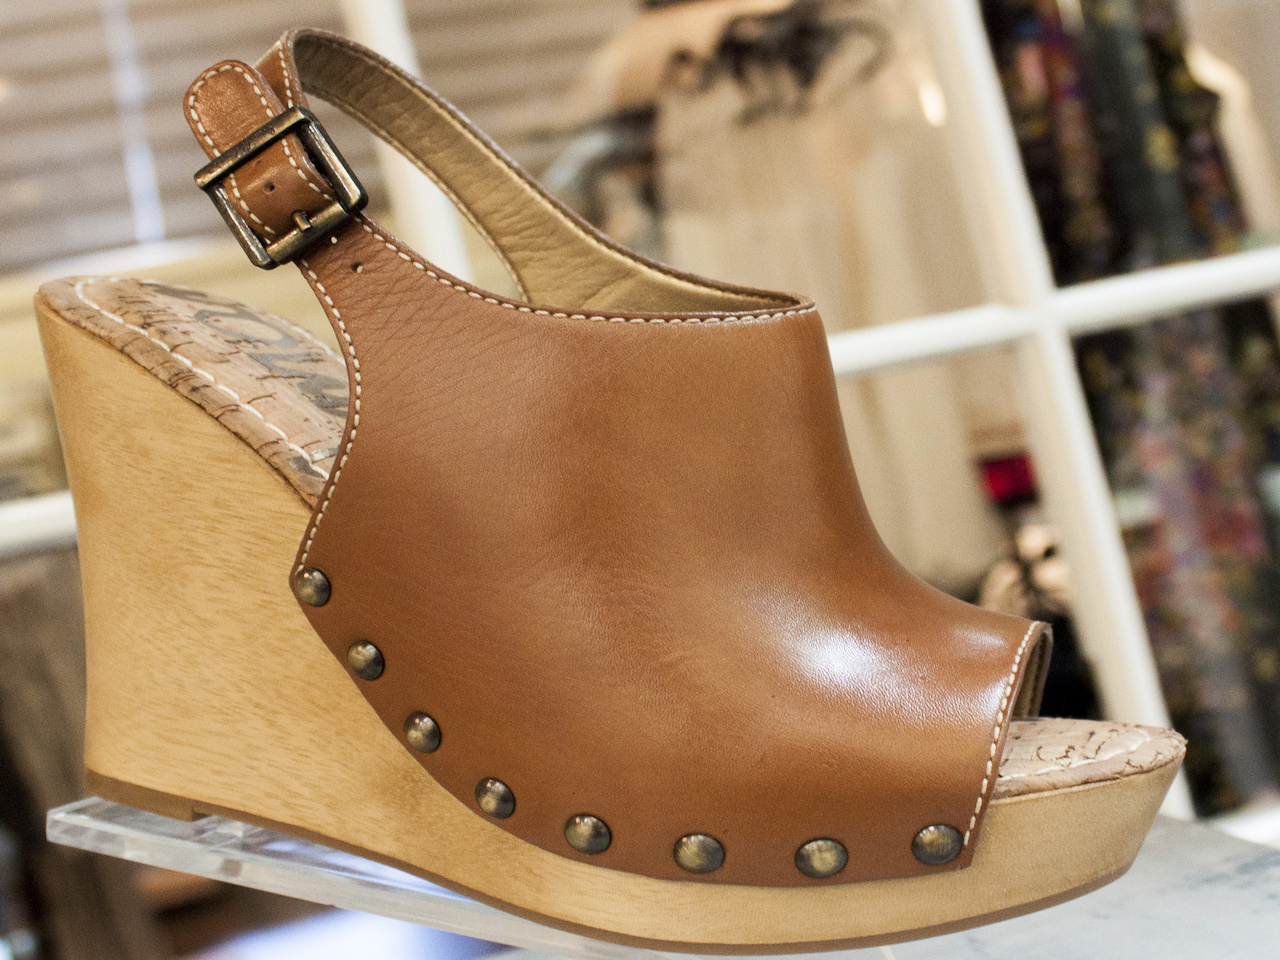 Sam Edelman open-toe brown wedges, $119, from More Therapy.